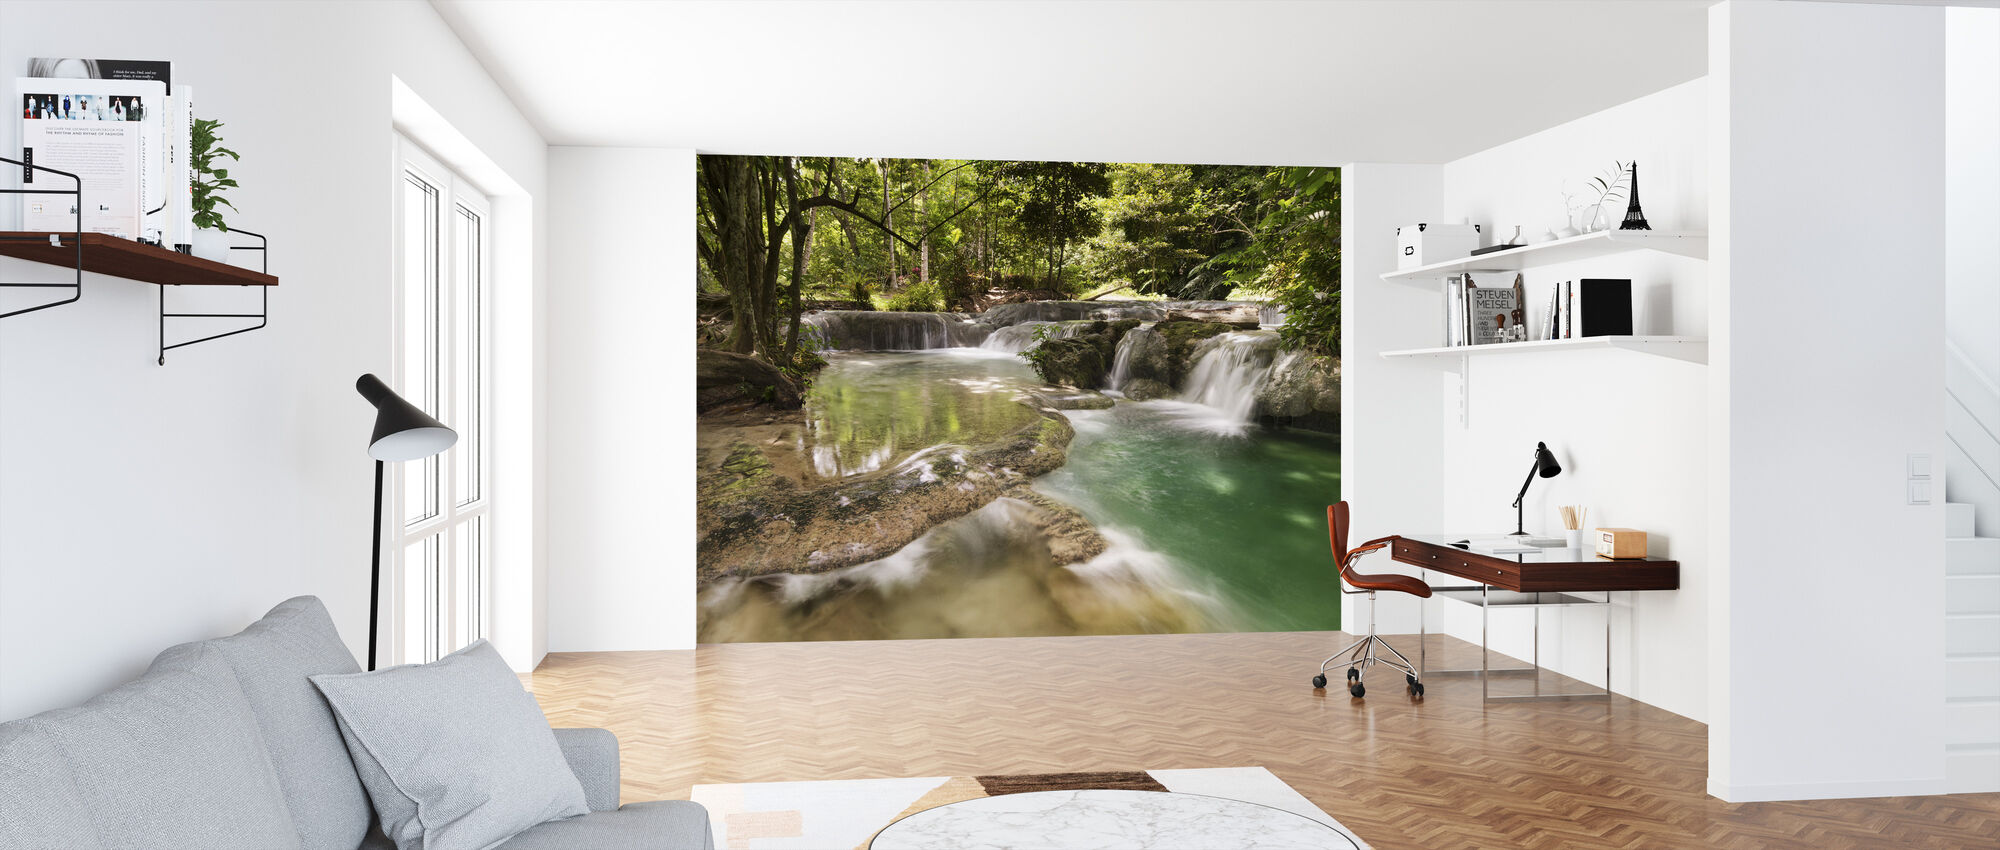 Panas Waterfalls II - Wallpaper - Office